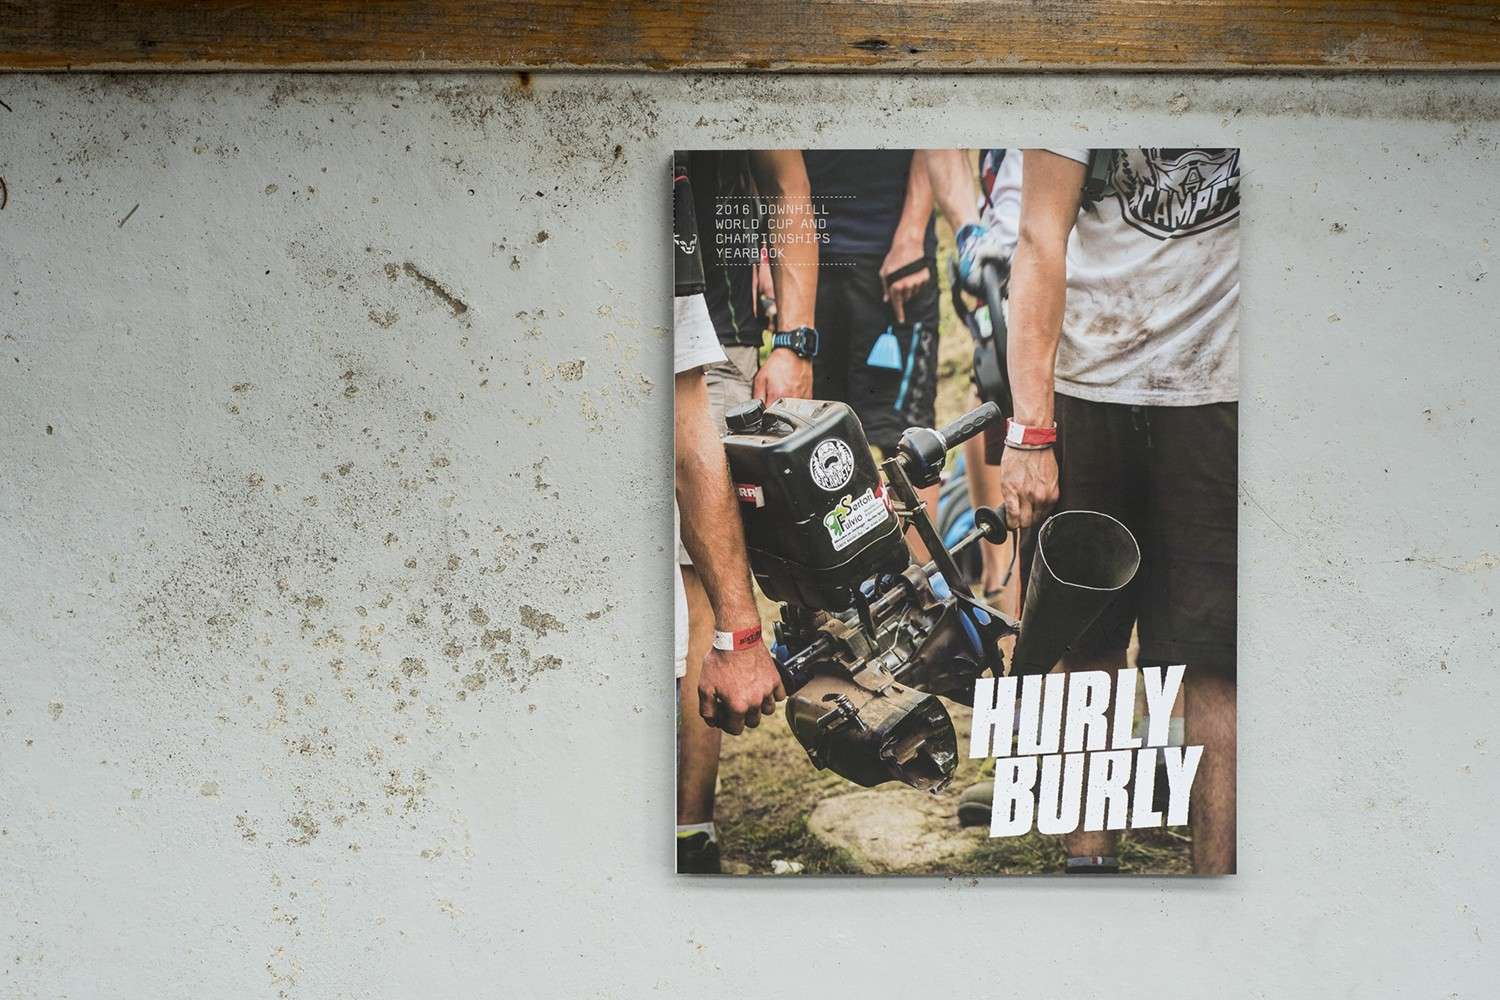 Hurly Burly downhill mountain bike book